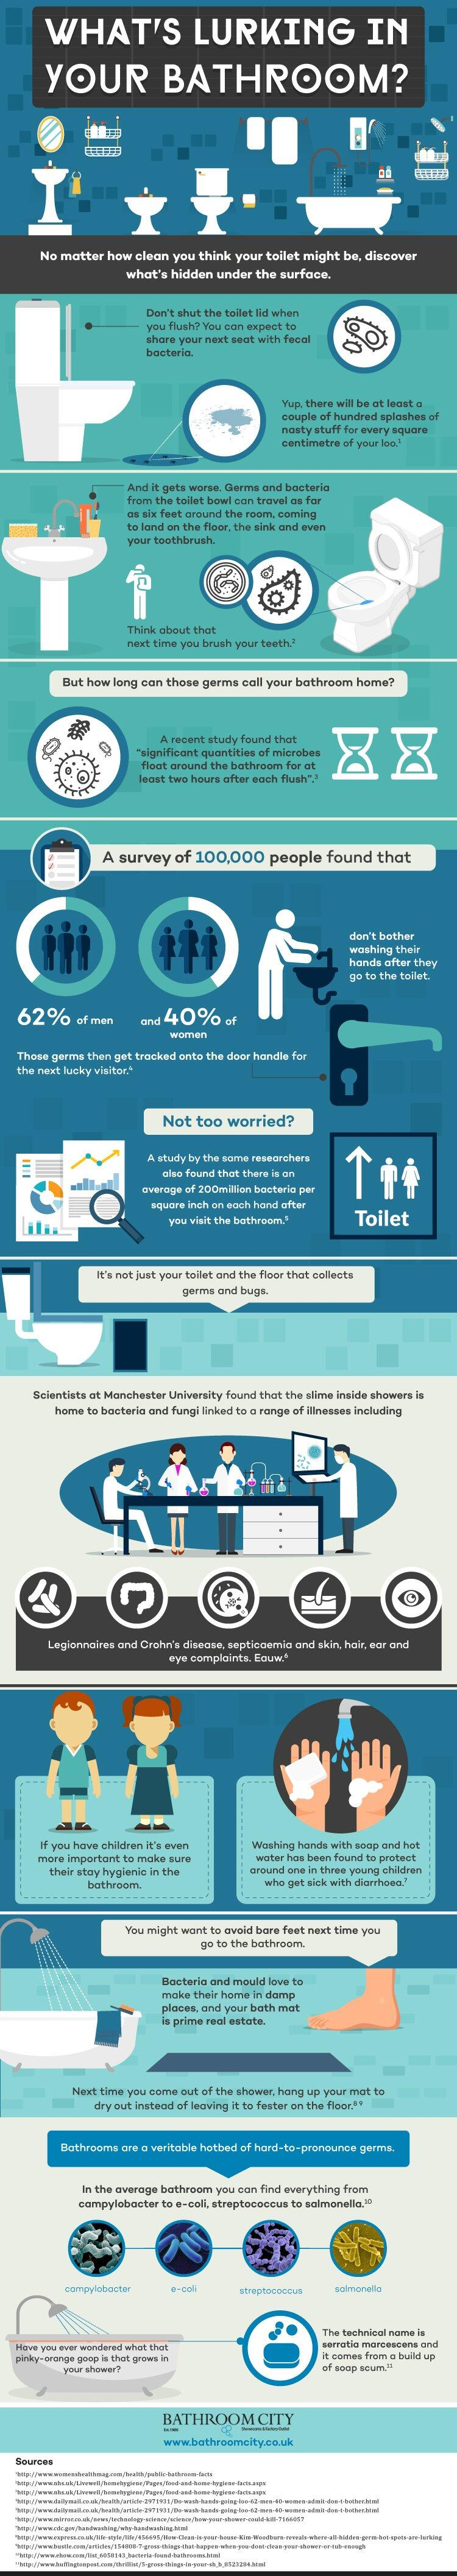 Interesting infographic on bathroom germs